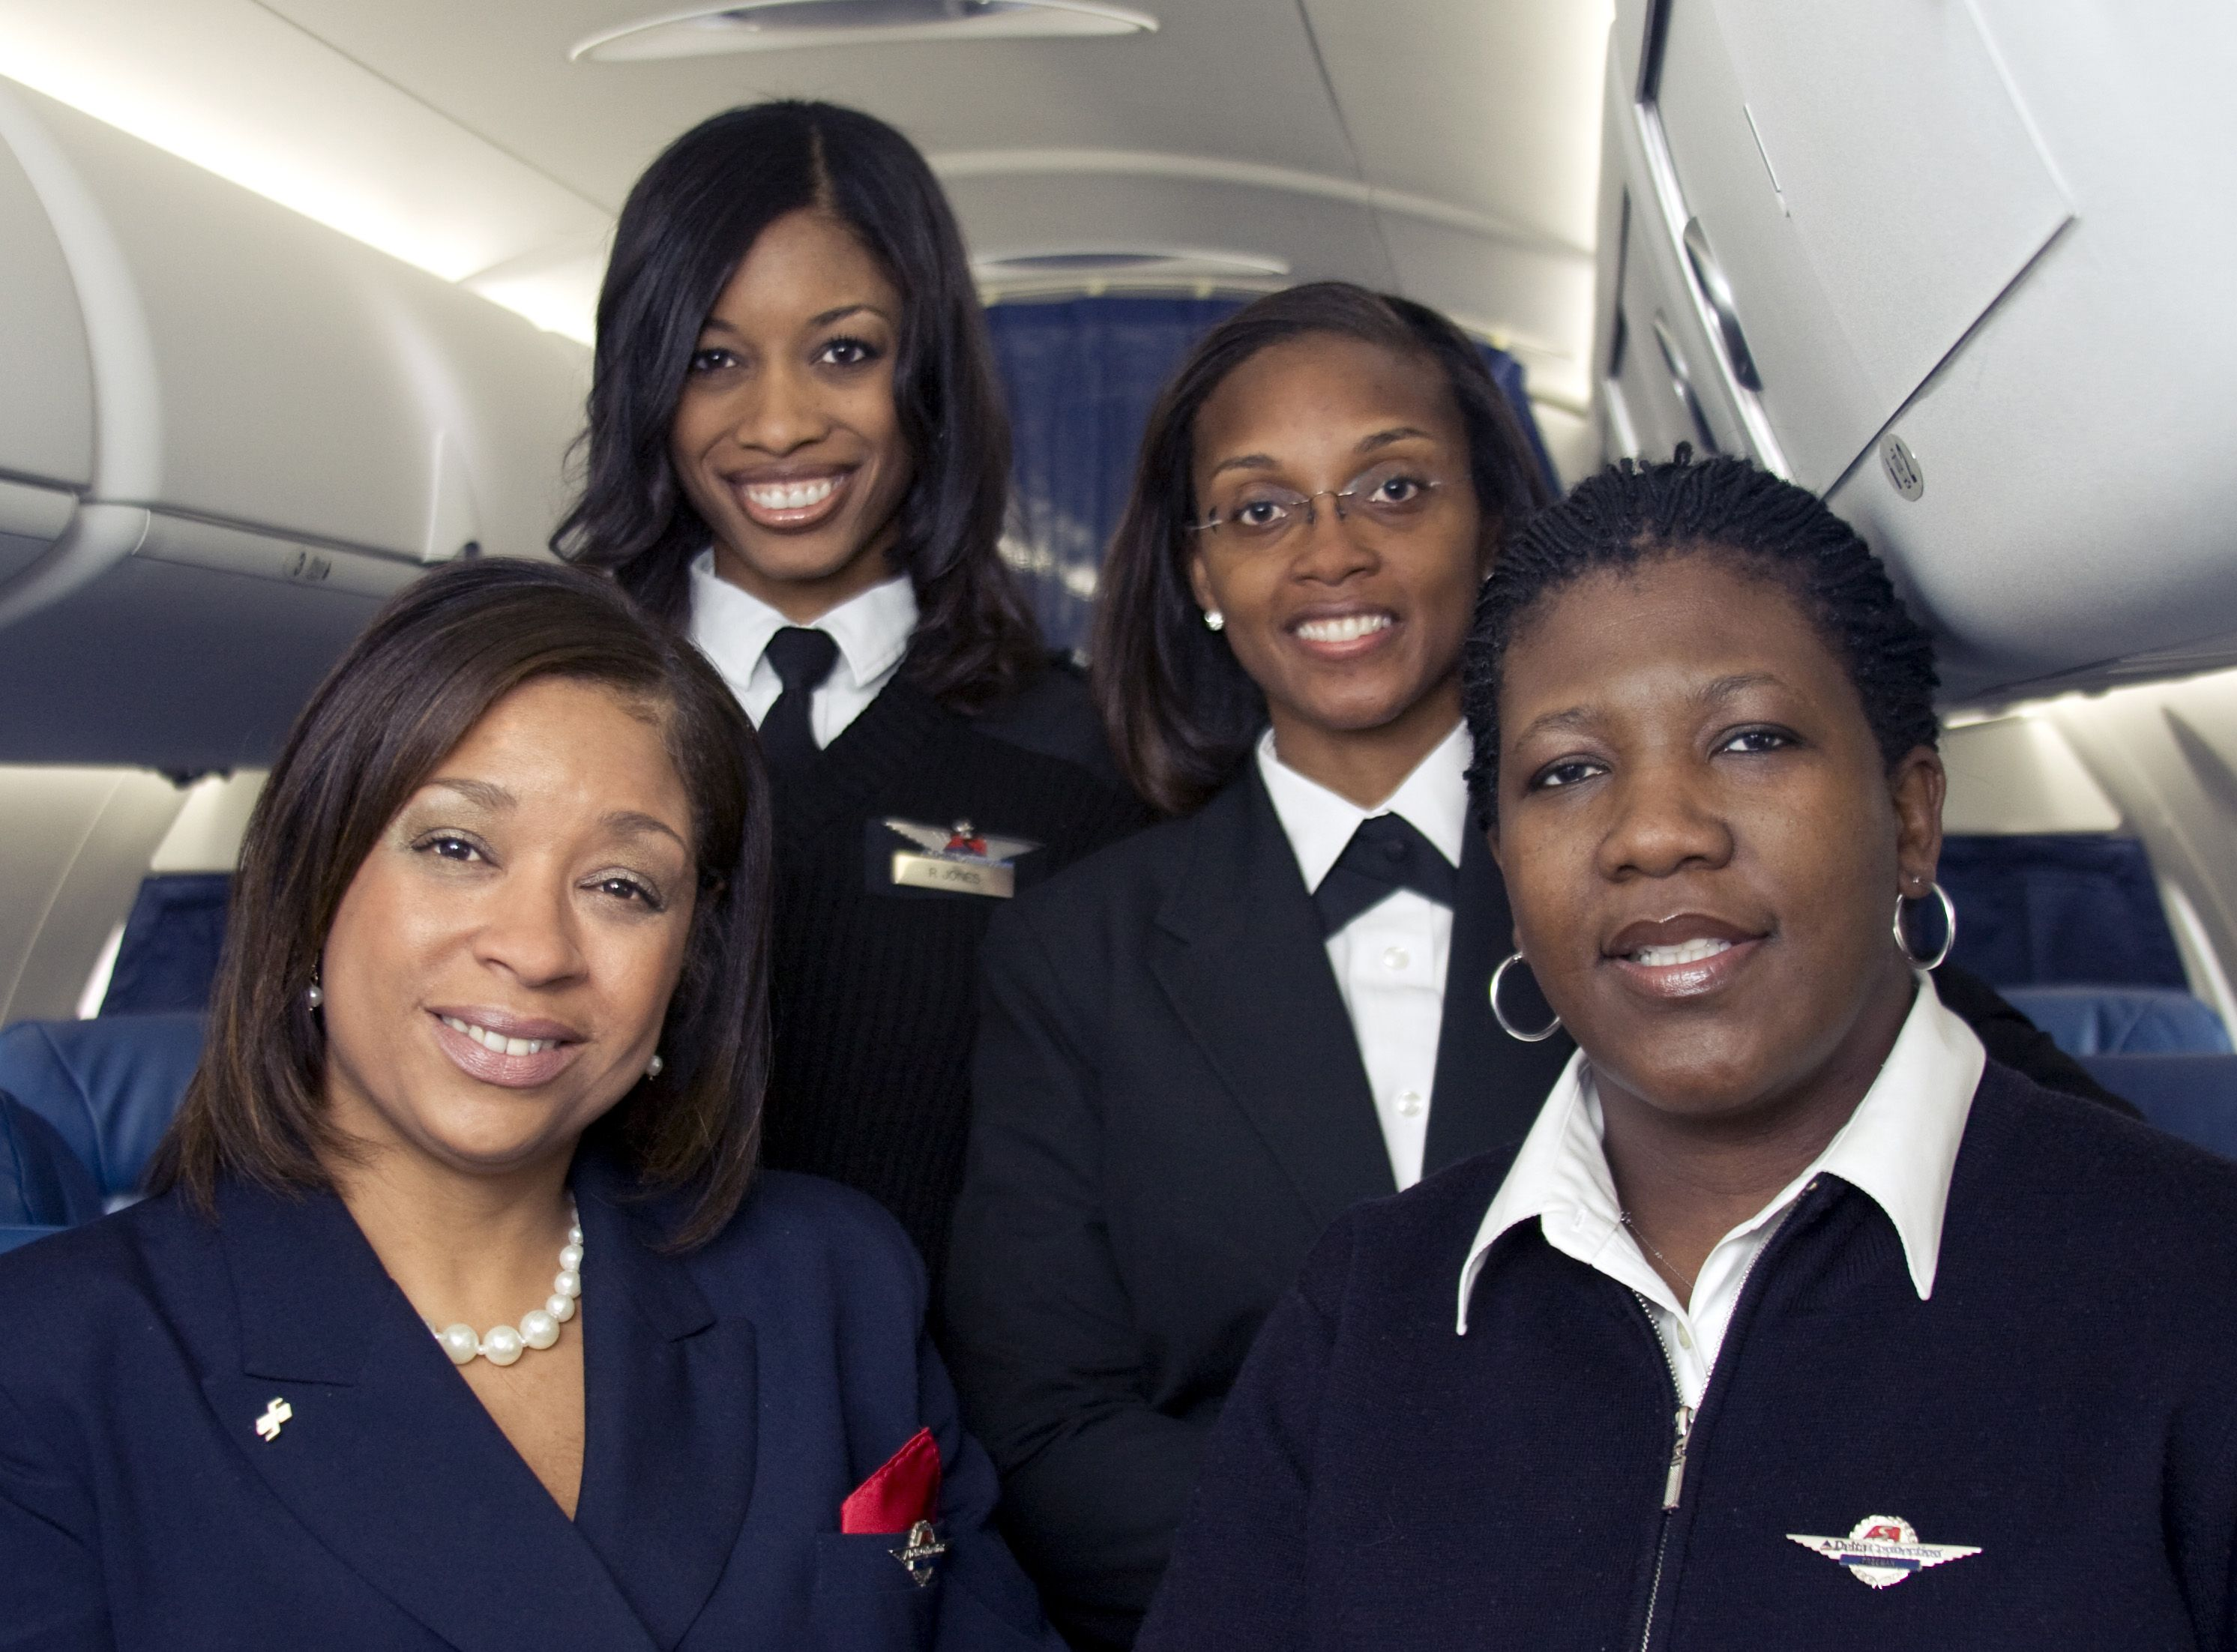 flight attendant american airlines and flight attendants come flight attendant american airlines and flight attendants